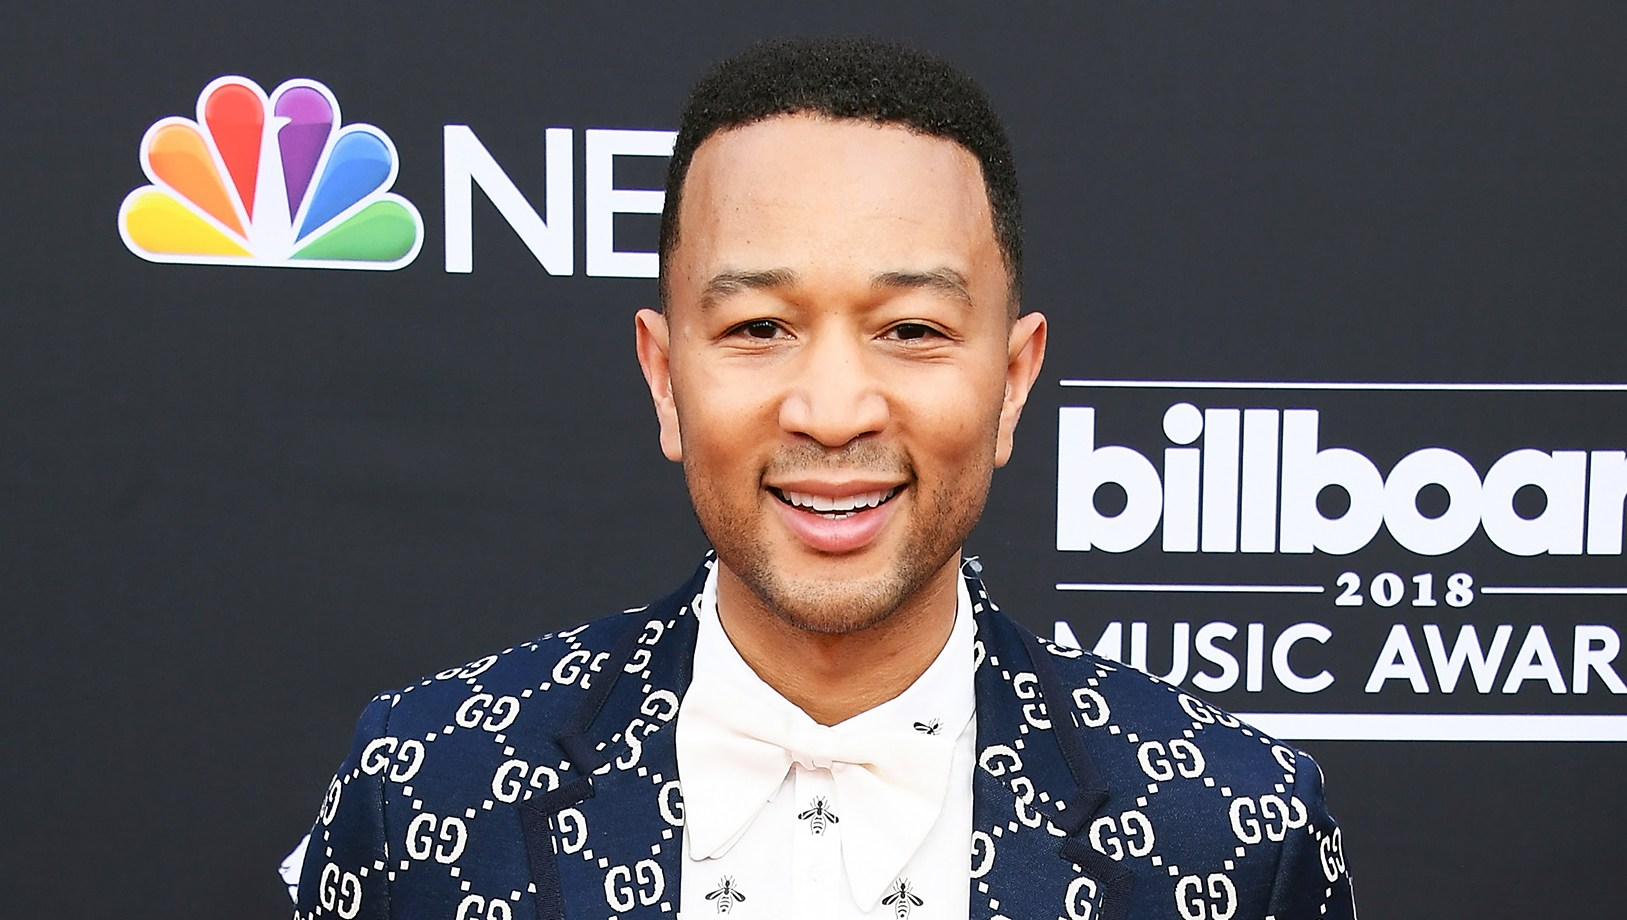 John Legend Billboard Music Awards 2018